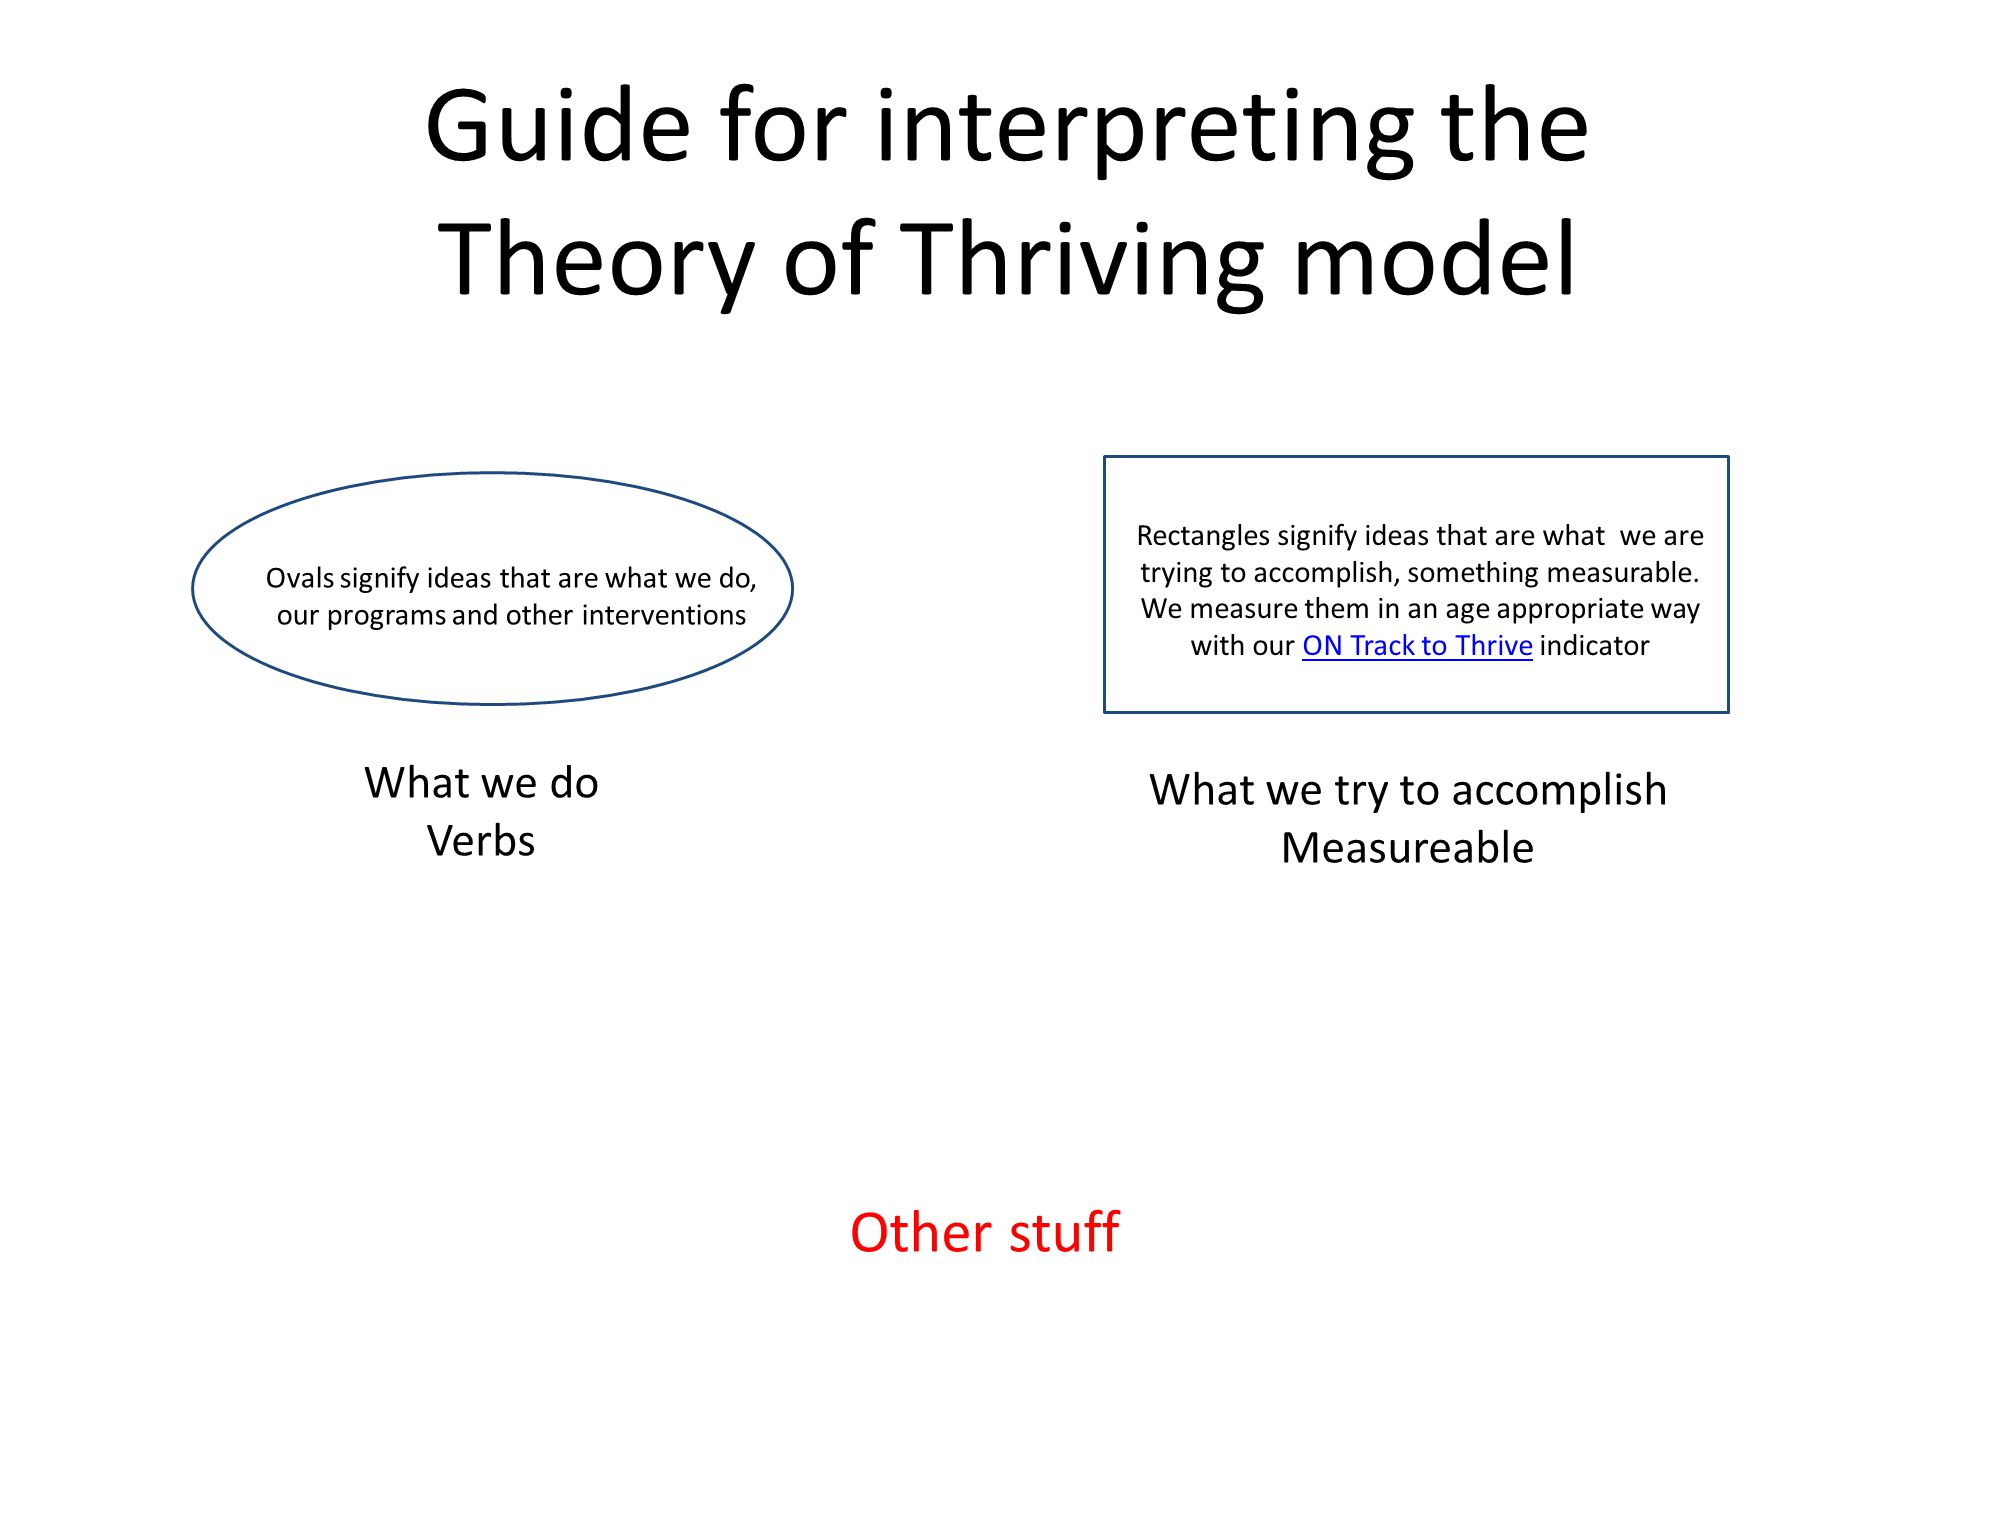 Guide for interpreting the Theory of Thriving model Other stuff What we do Verbs What we try to accomplish Measureable Ovals signify ideas that are what we do, our programs and other interventions Rectangles signify ideas that are what we are trying to accomplish, something measurable.